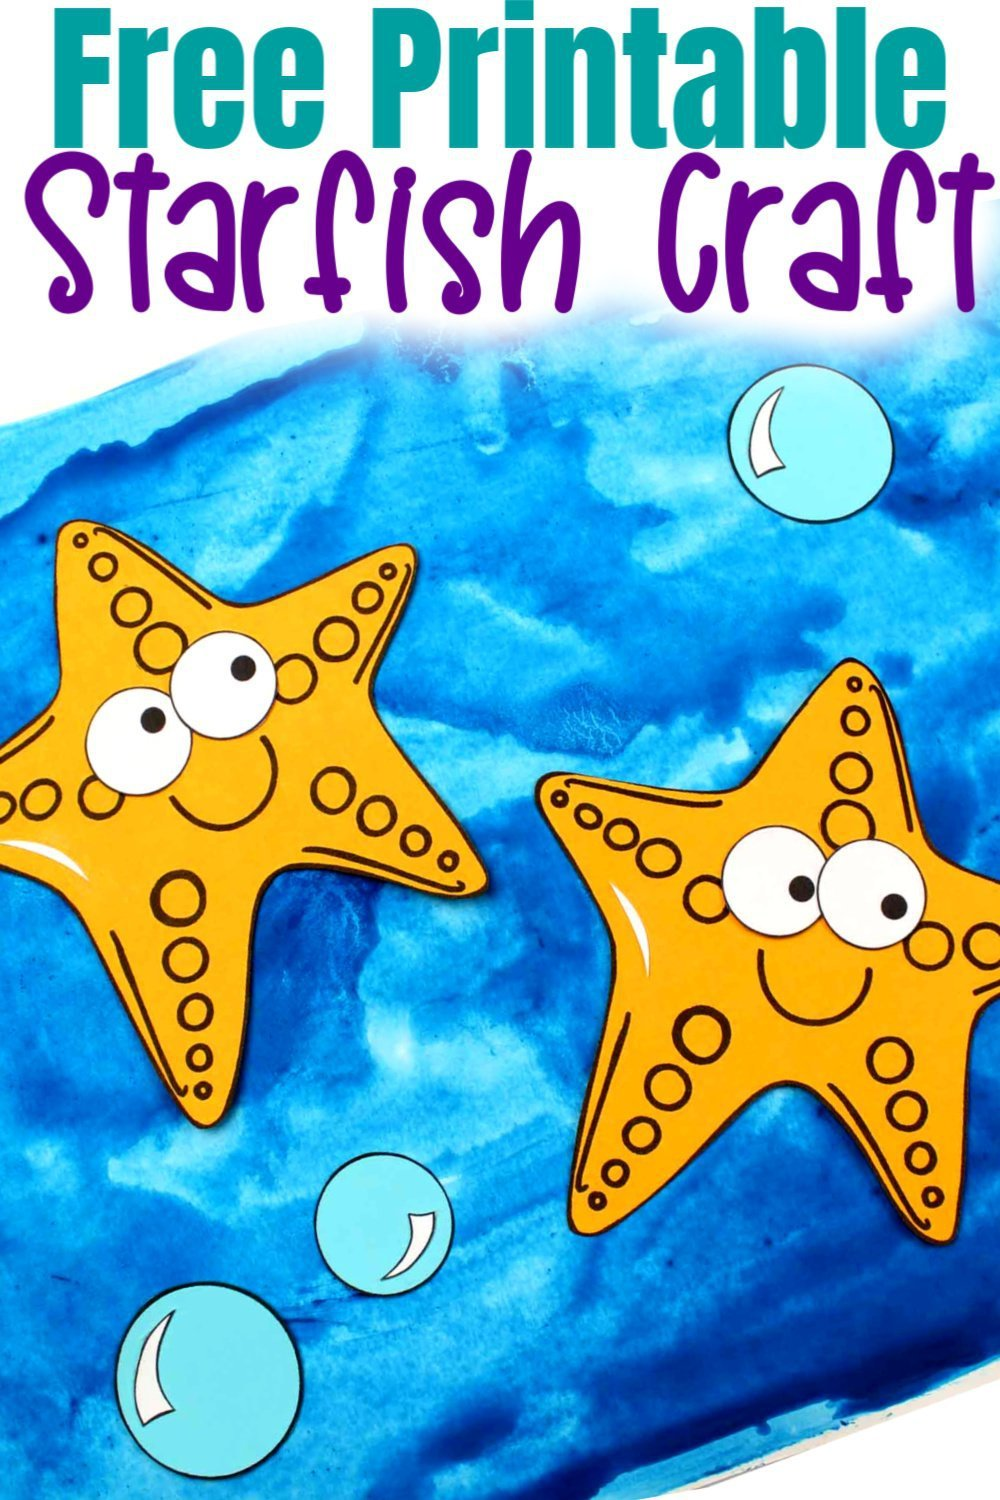 Free Printable Ocean Animal Starfish Crafts for kids of all ages, including preschoolers and toddlers